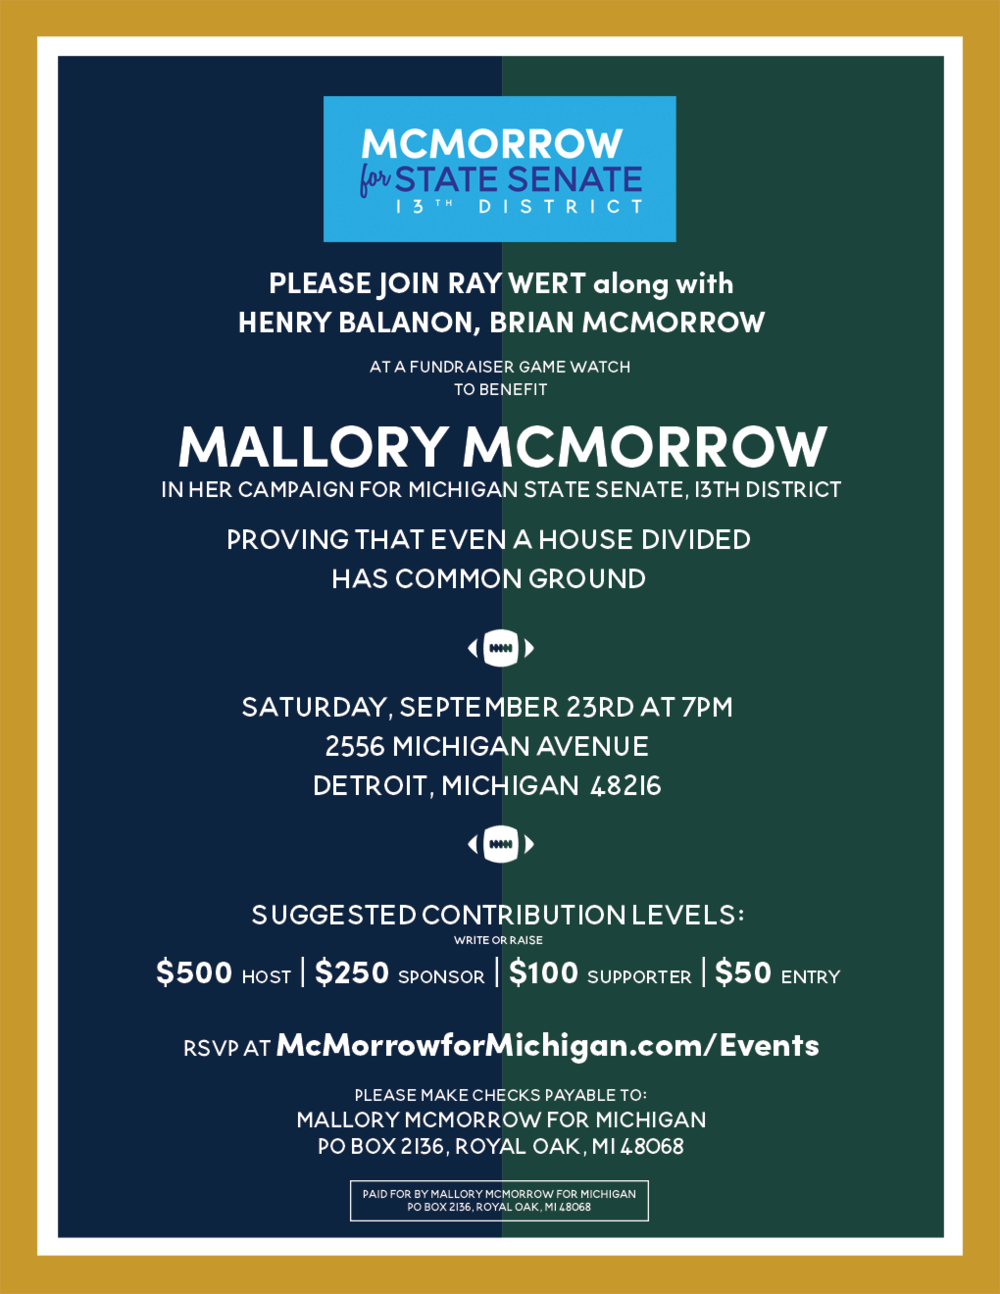 McMorrowgamewatch_fundraiser_invite_v2.png